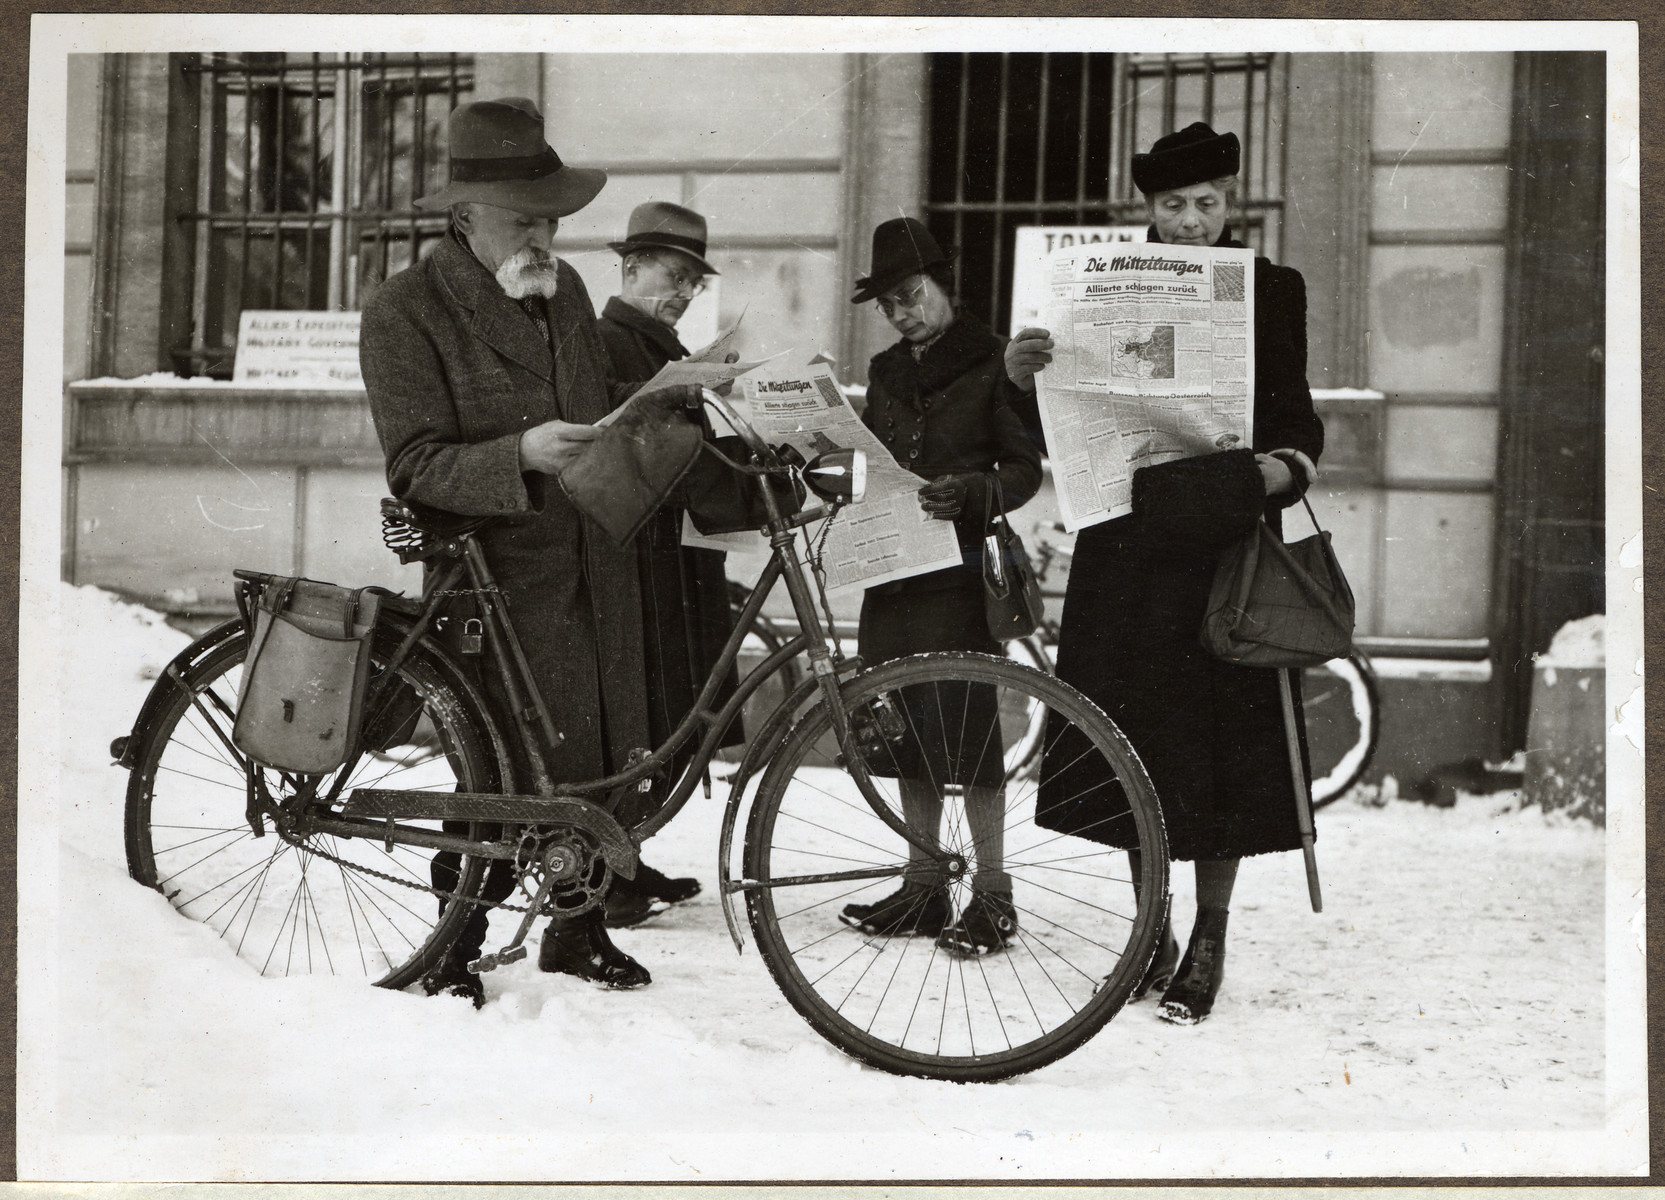 Citizens of Aachen read Germany's first non-Nazi newspaper.